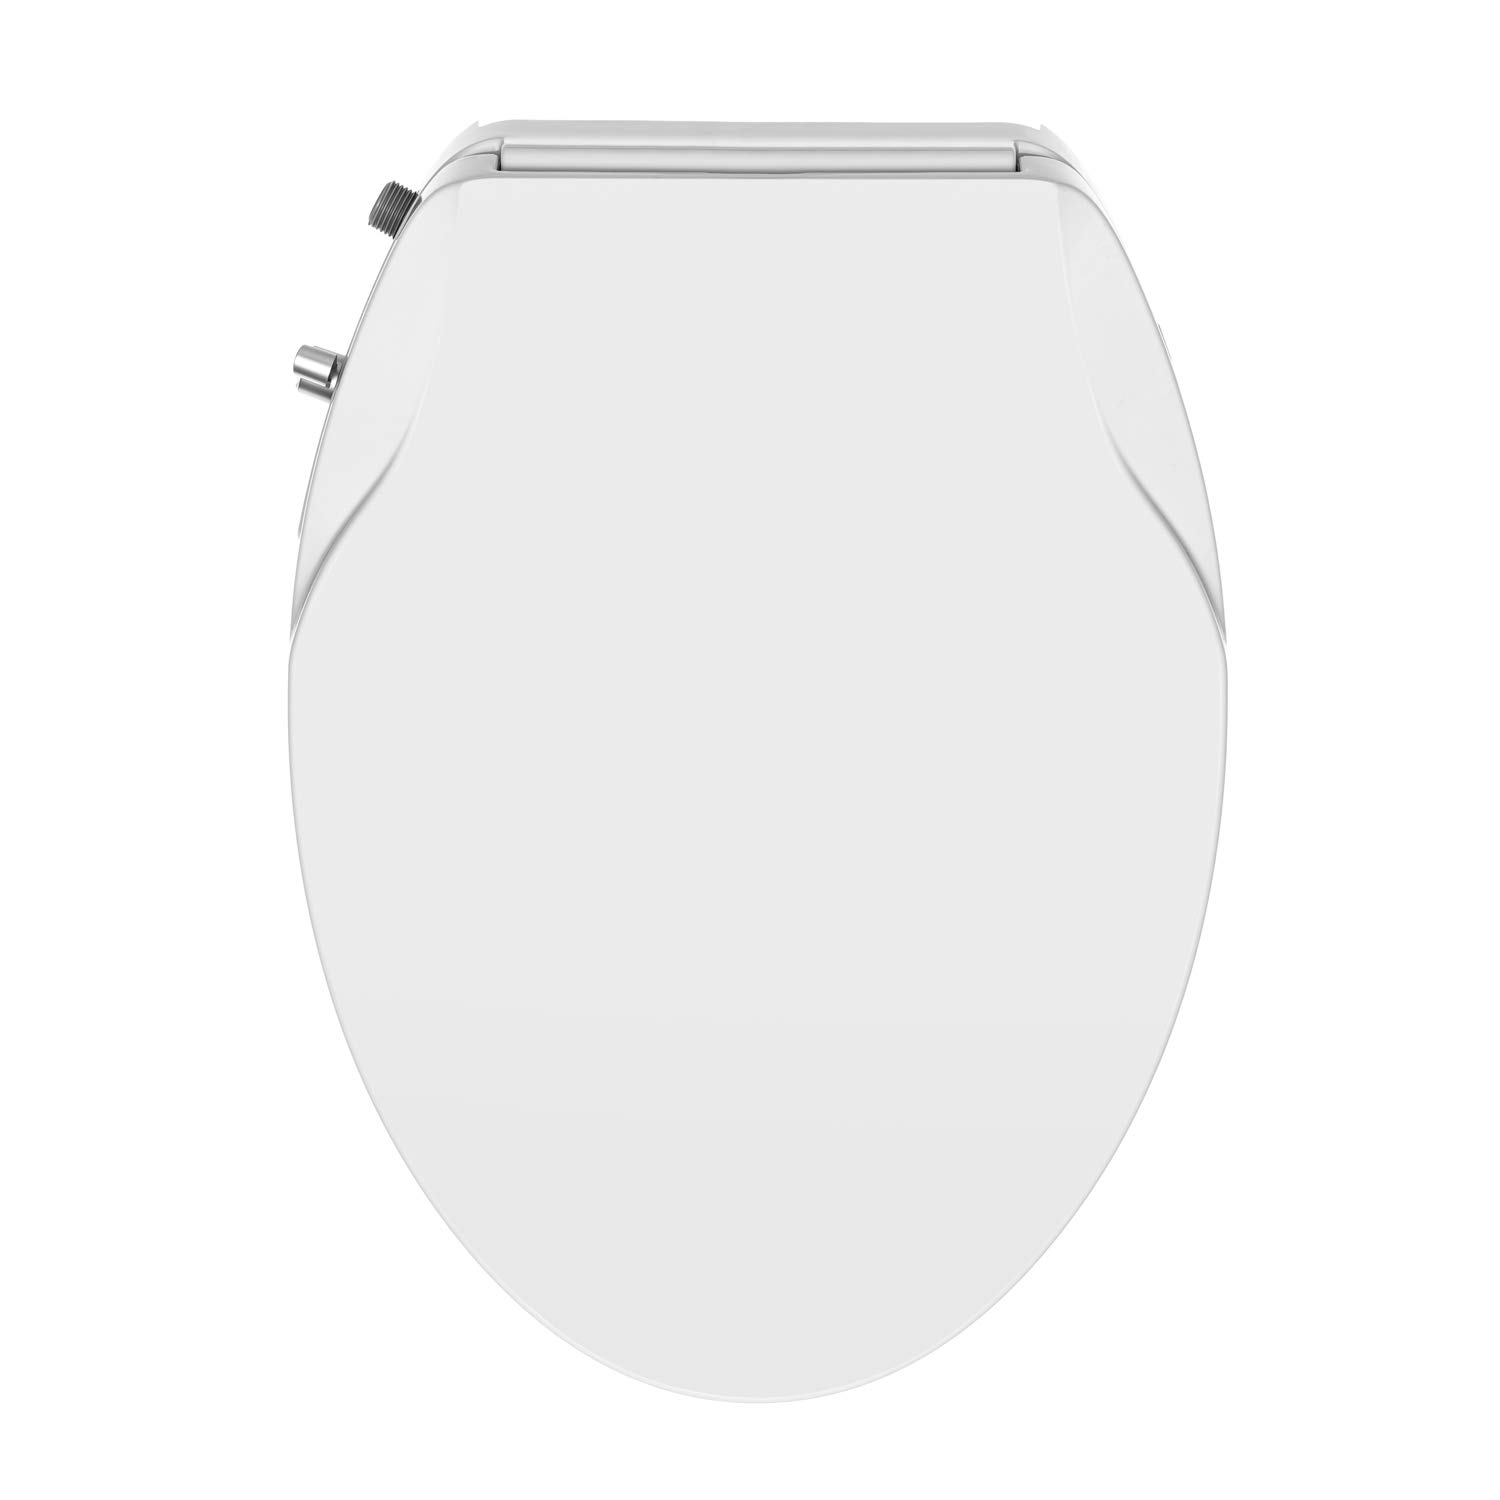 Easy Installation and Slim Design Soft close Dual Nozzles Non-Electric Bidet Round Toilet Seat in White with On//Off Solid Brass T Adapter Eco-Friendly Water-Powered /& Save Paper